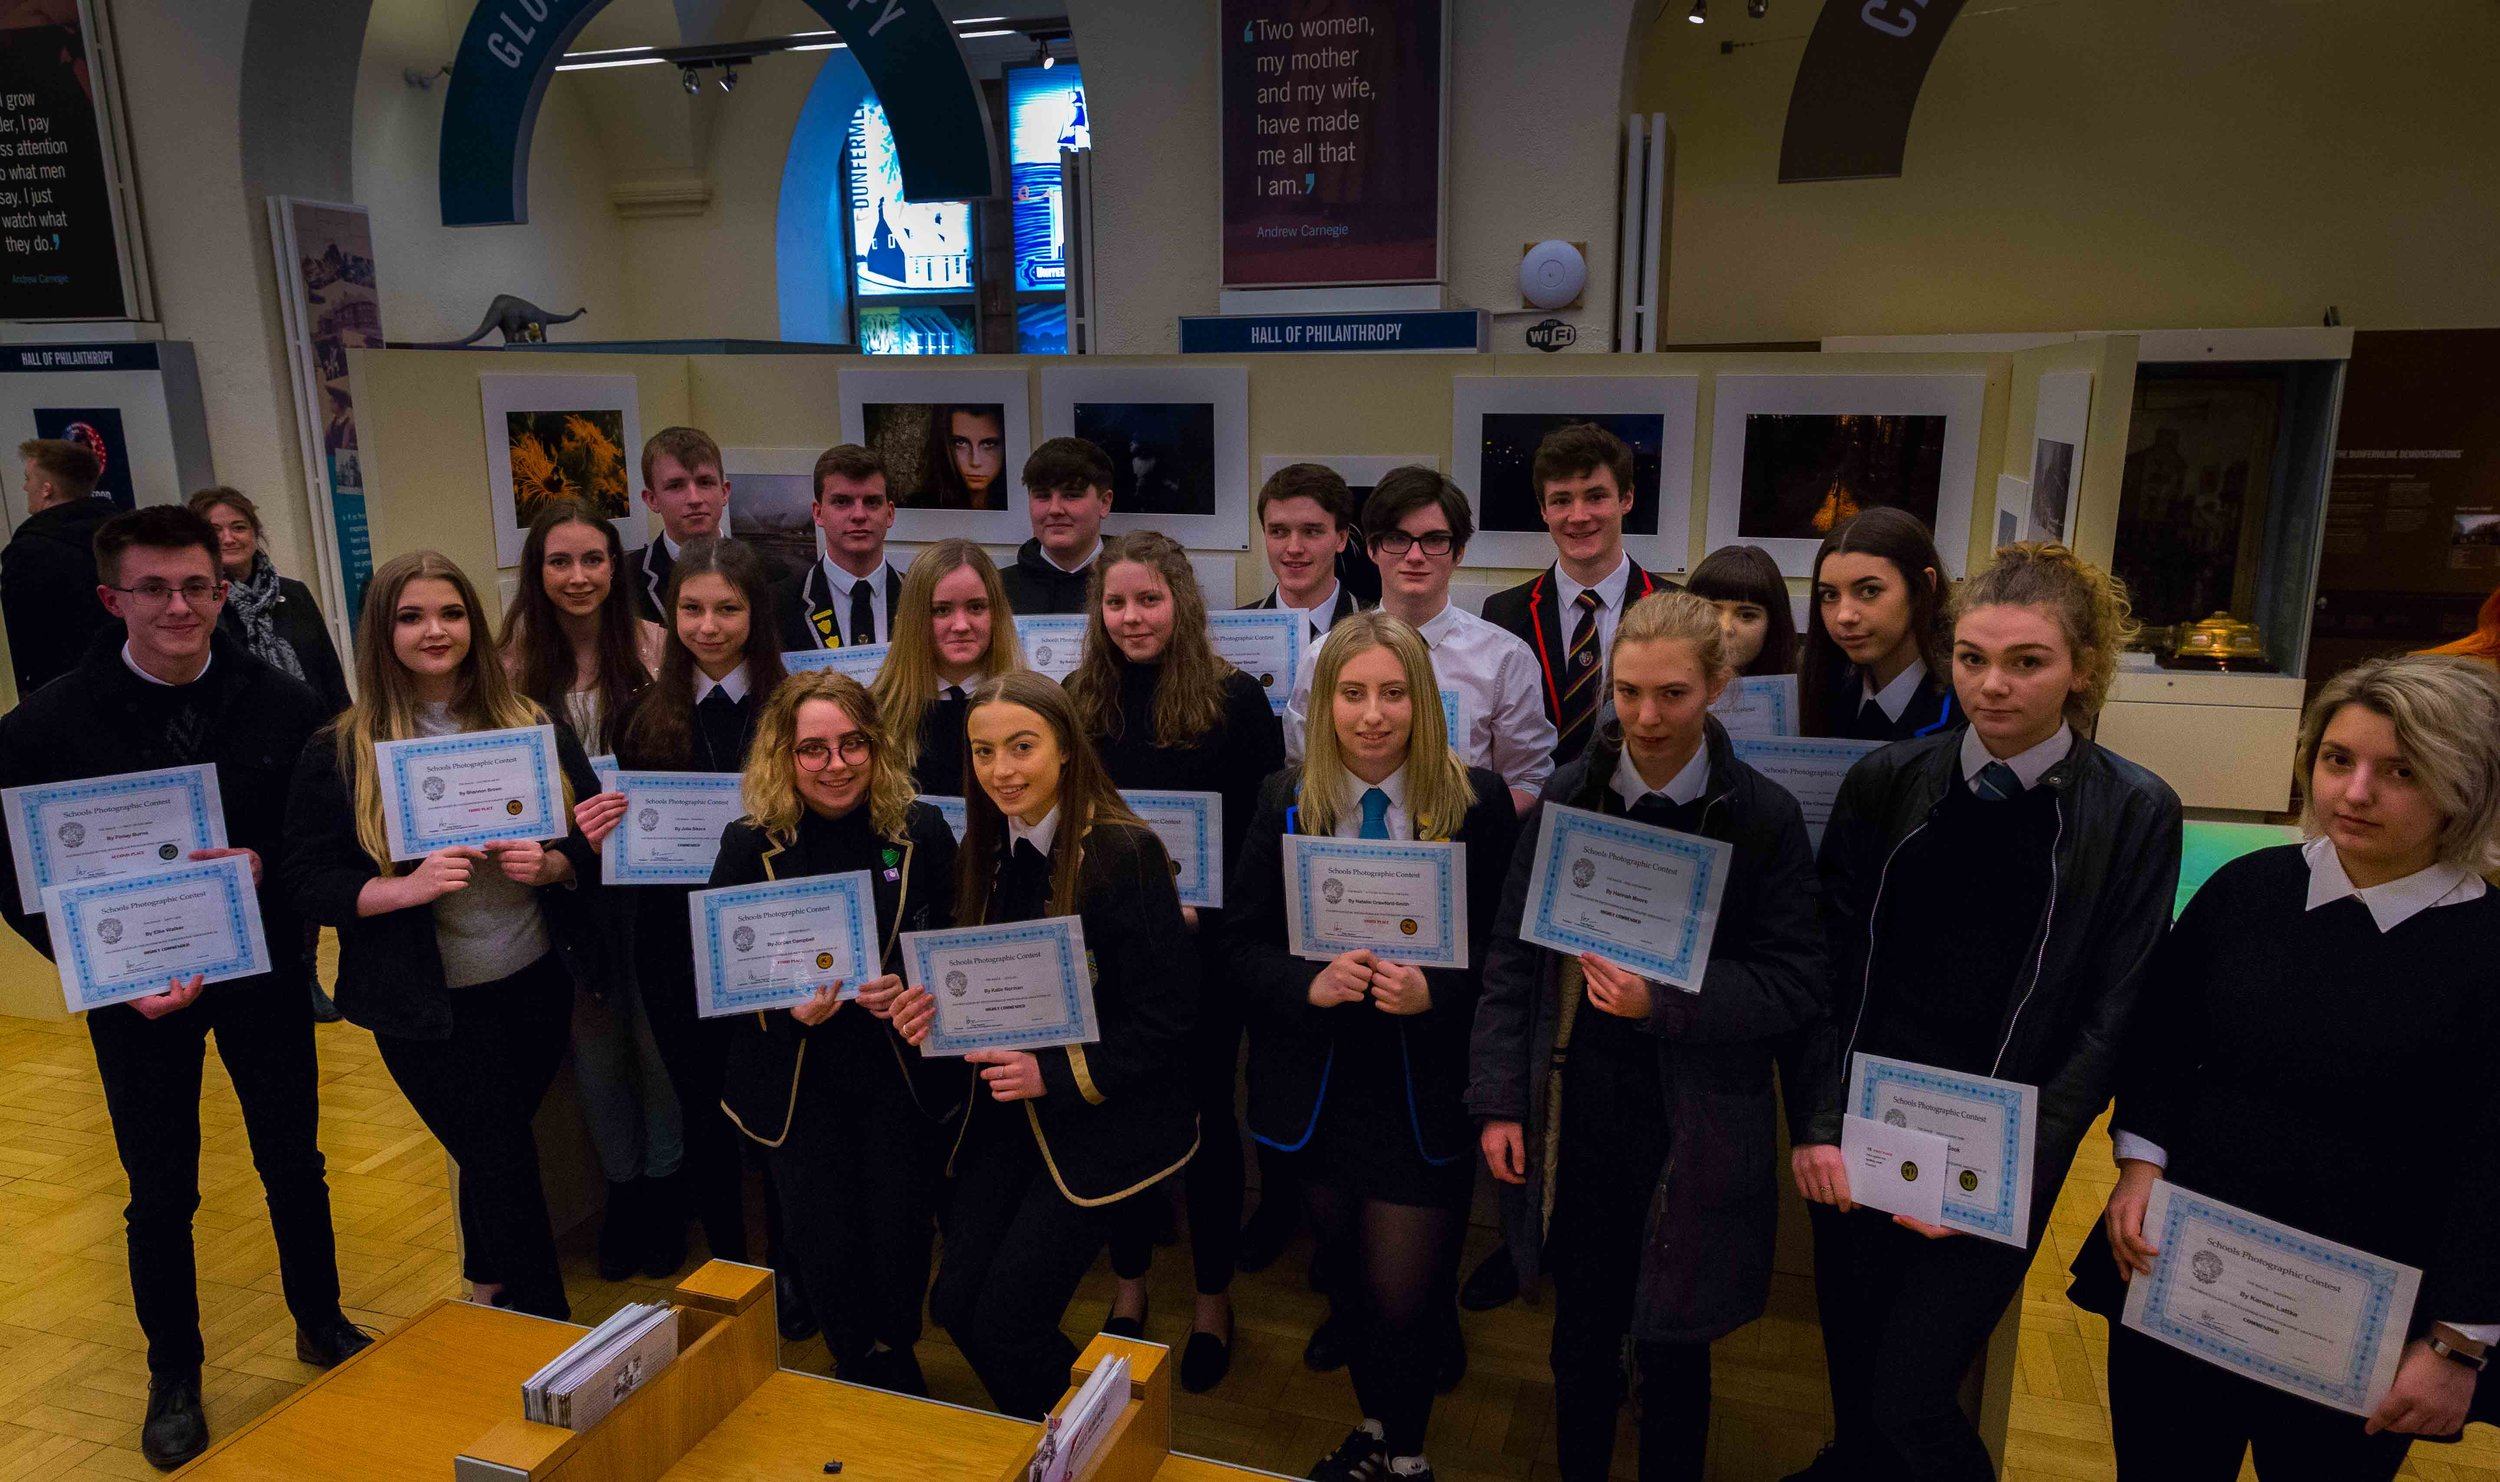 DPA PRIZE WINNERS WITH THEIR CERTIFICATES AT THE EXHIBITION LAUNCH